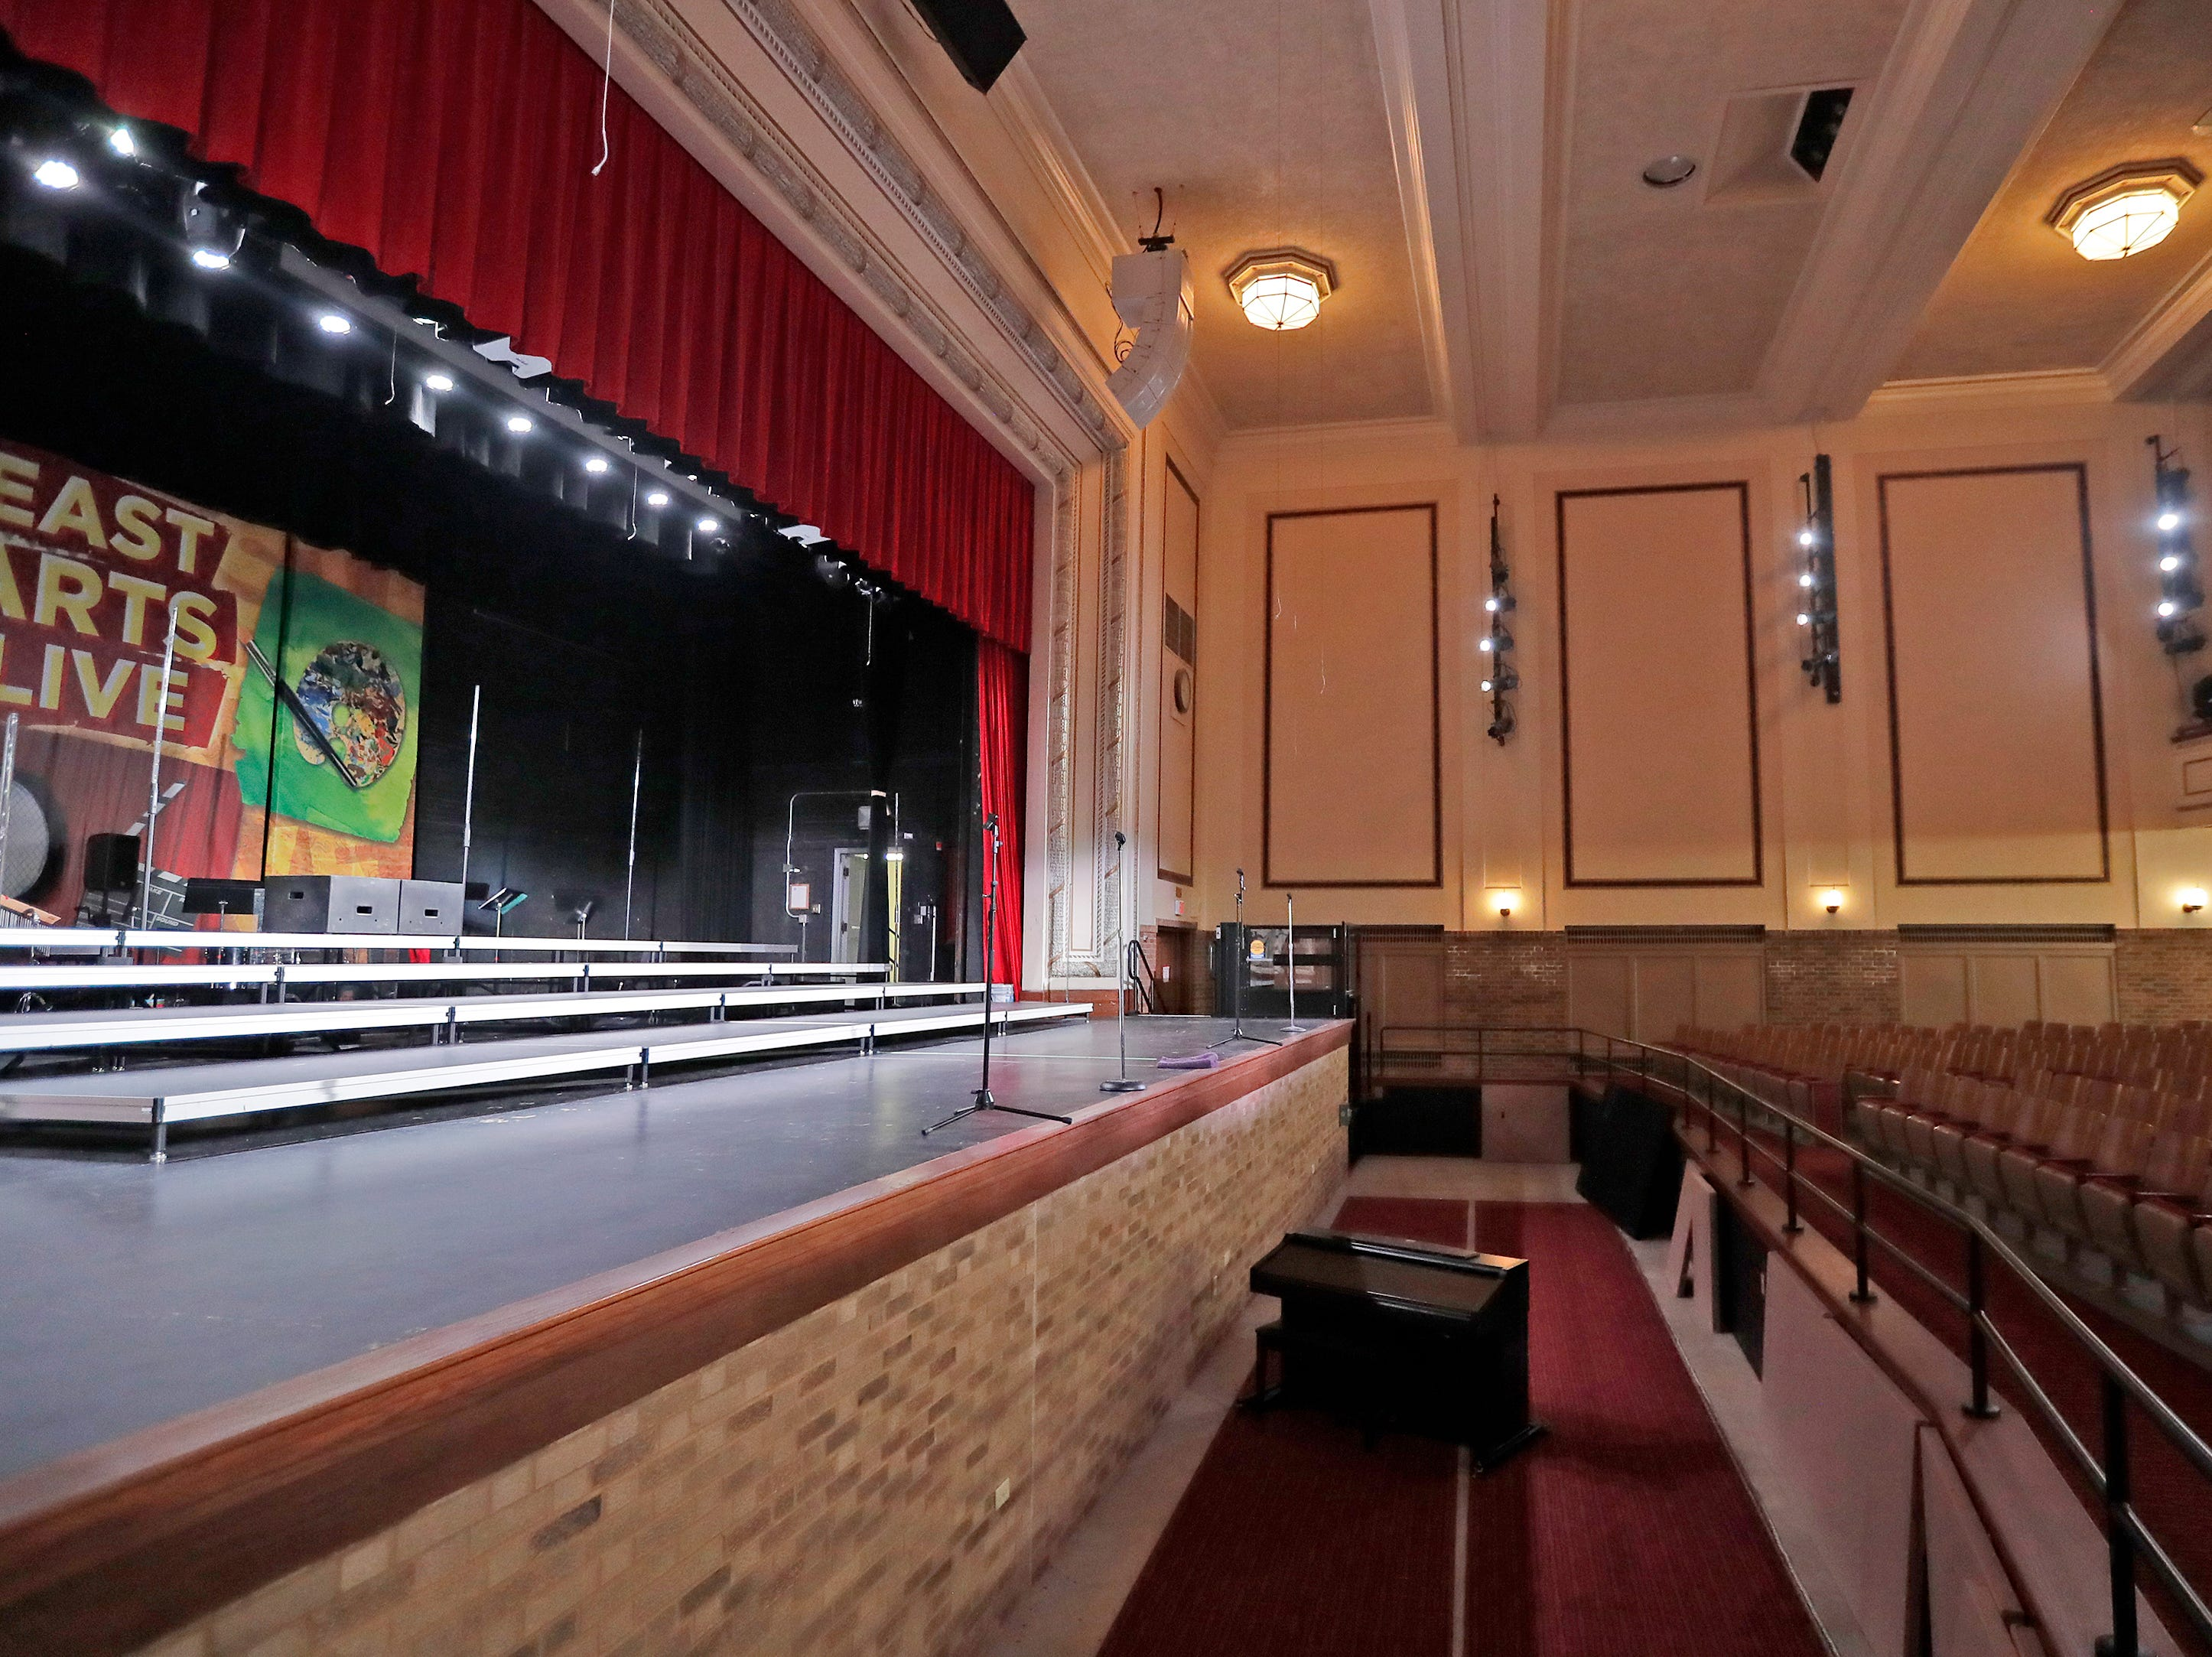 The remodeled auditorium with new orchestra pit at East High School is shown on Wednesday, February 13, 2019 in Green Bay, Wis.